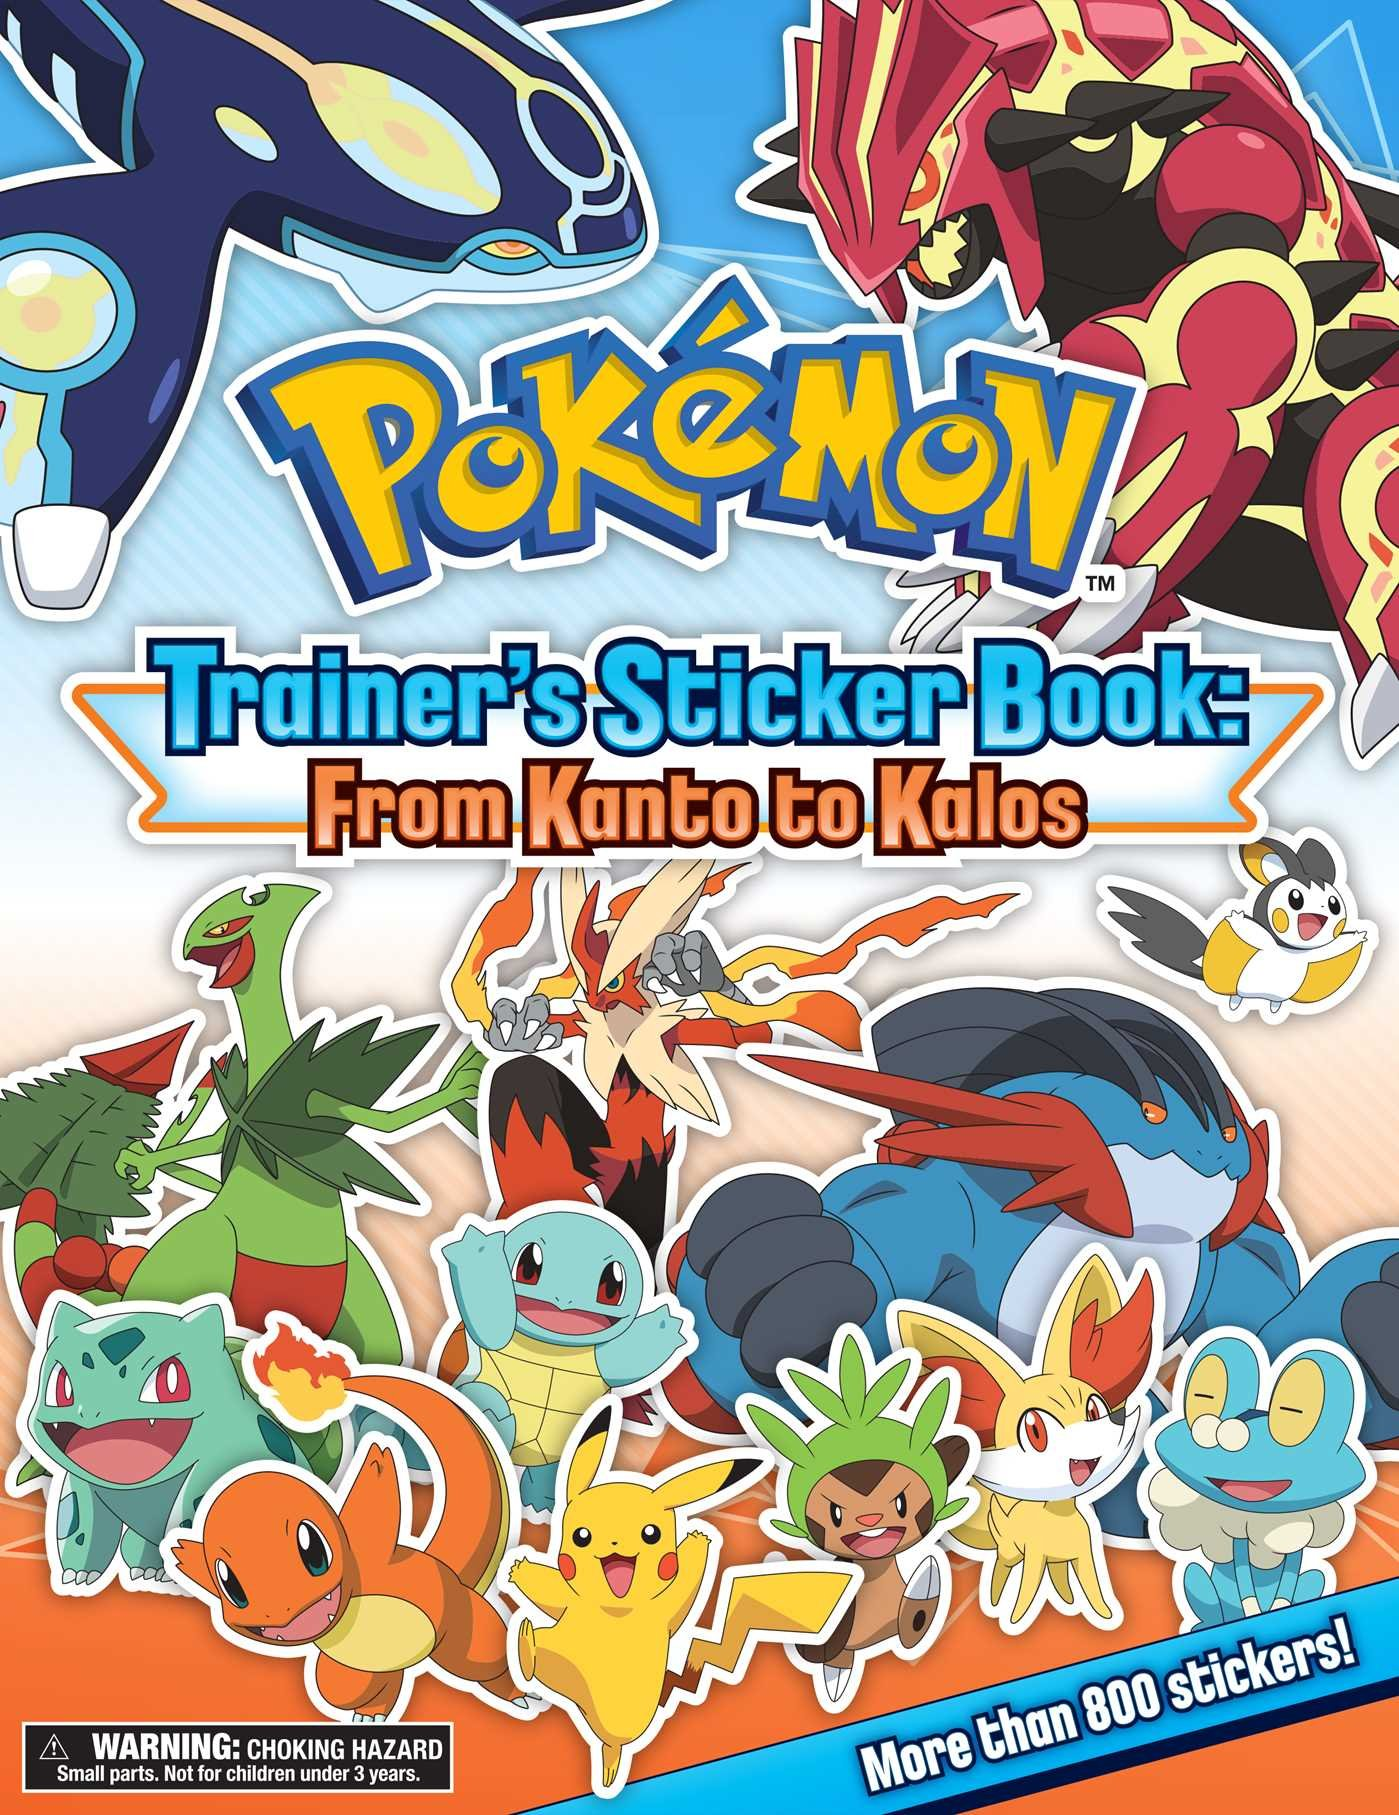 Pokemon kanto coloring pages - Amazon Com Pok Mon Trainer S Sticker Book From Kanto To Kalos 9781604381863 Pikachu Press Books